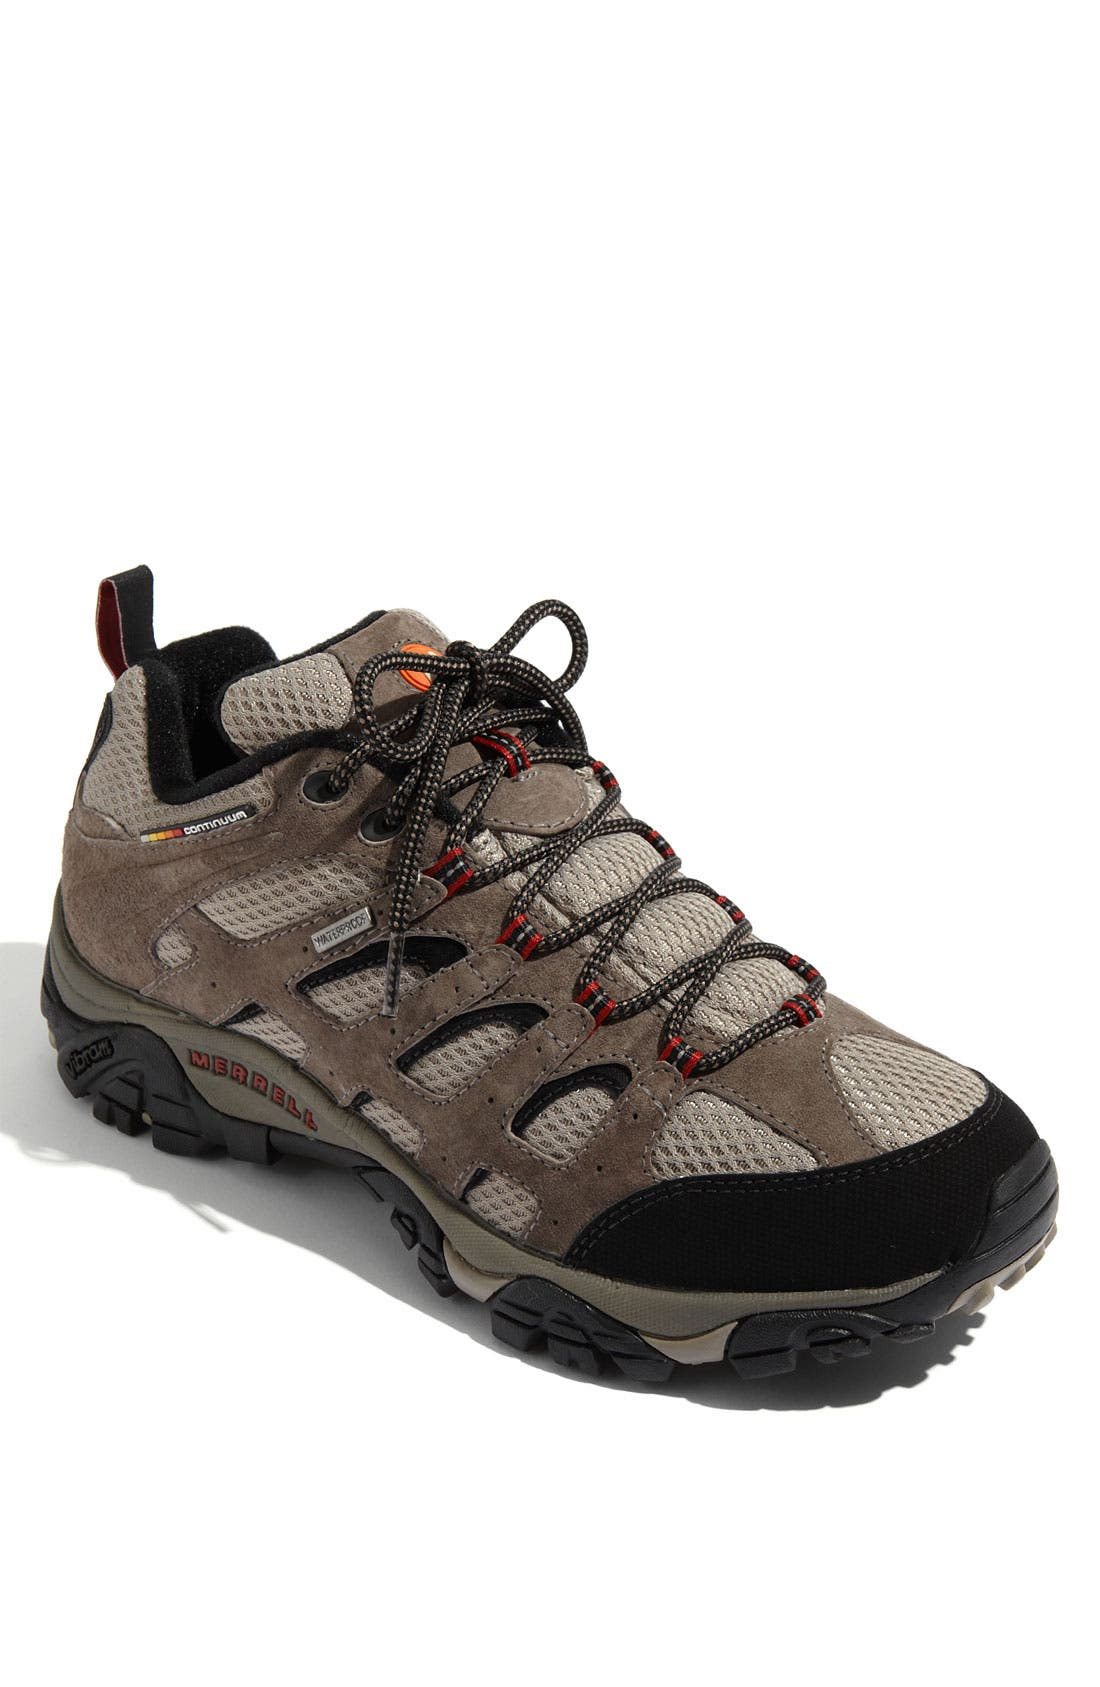 Main Image - Merrell 'Moab' Waterproof Hiking Shoe (Men)